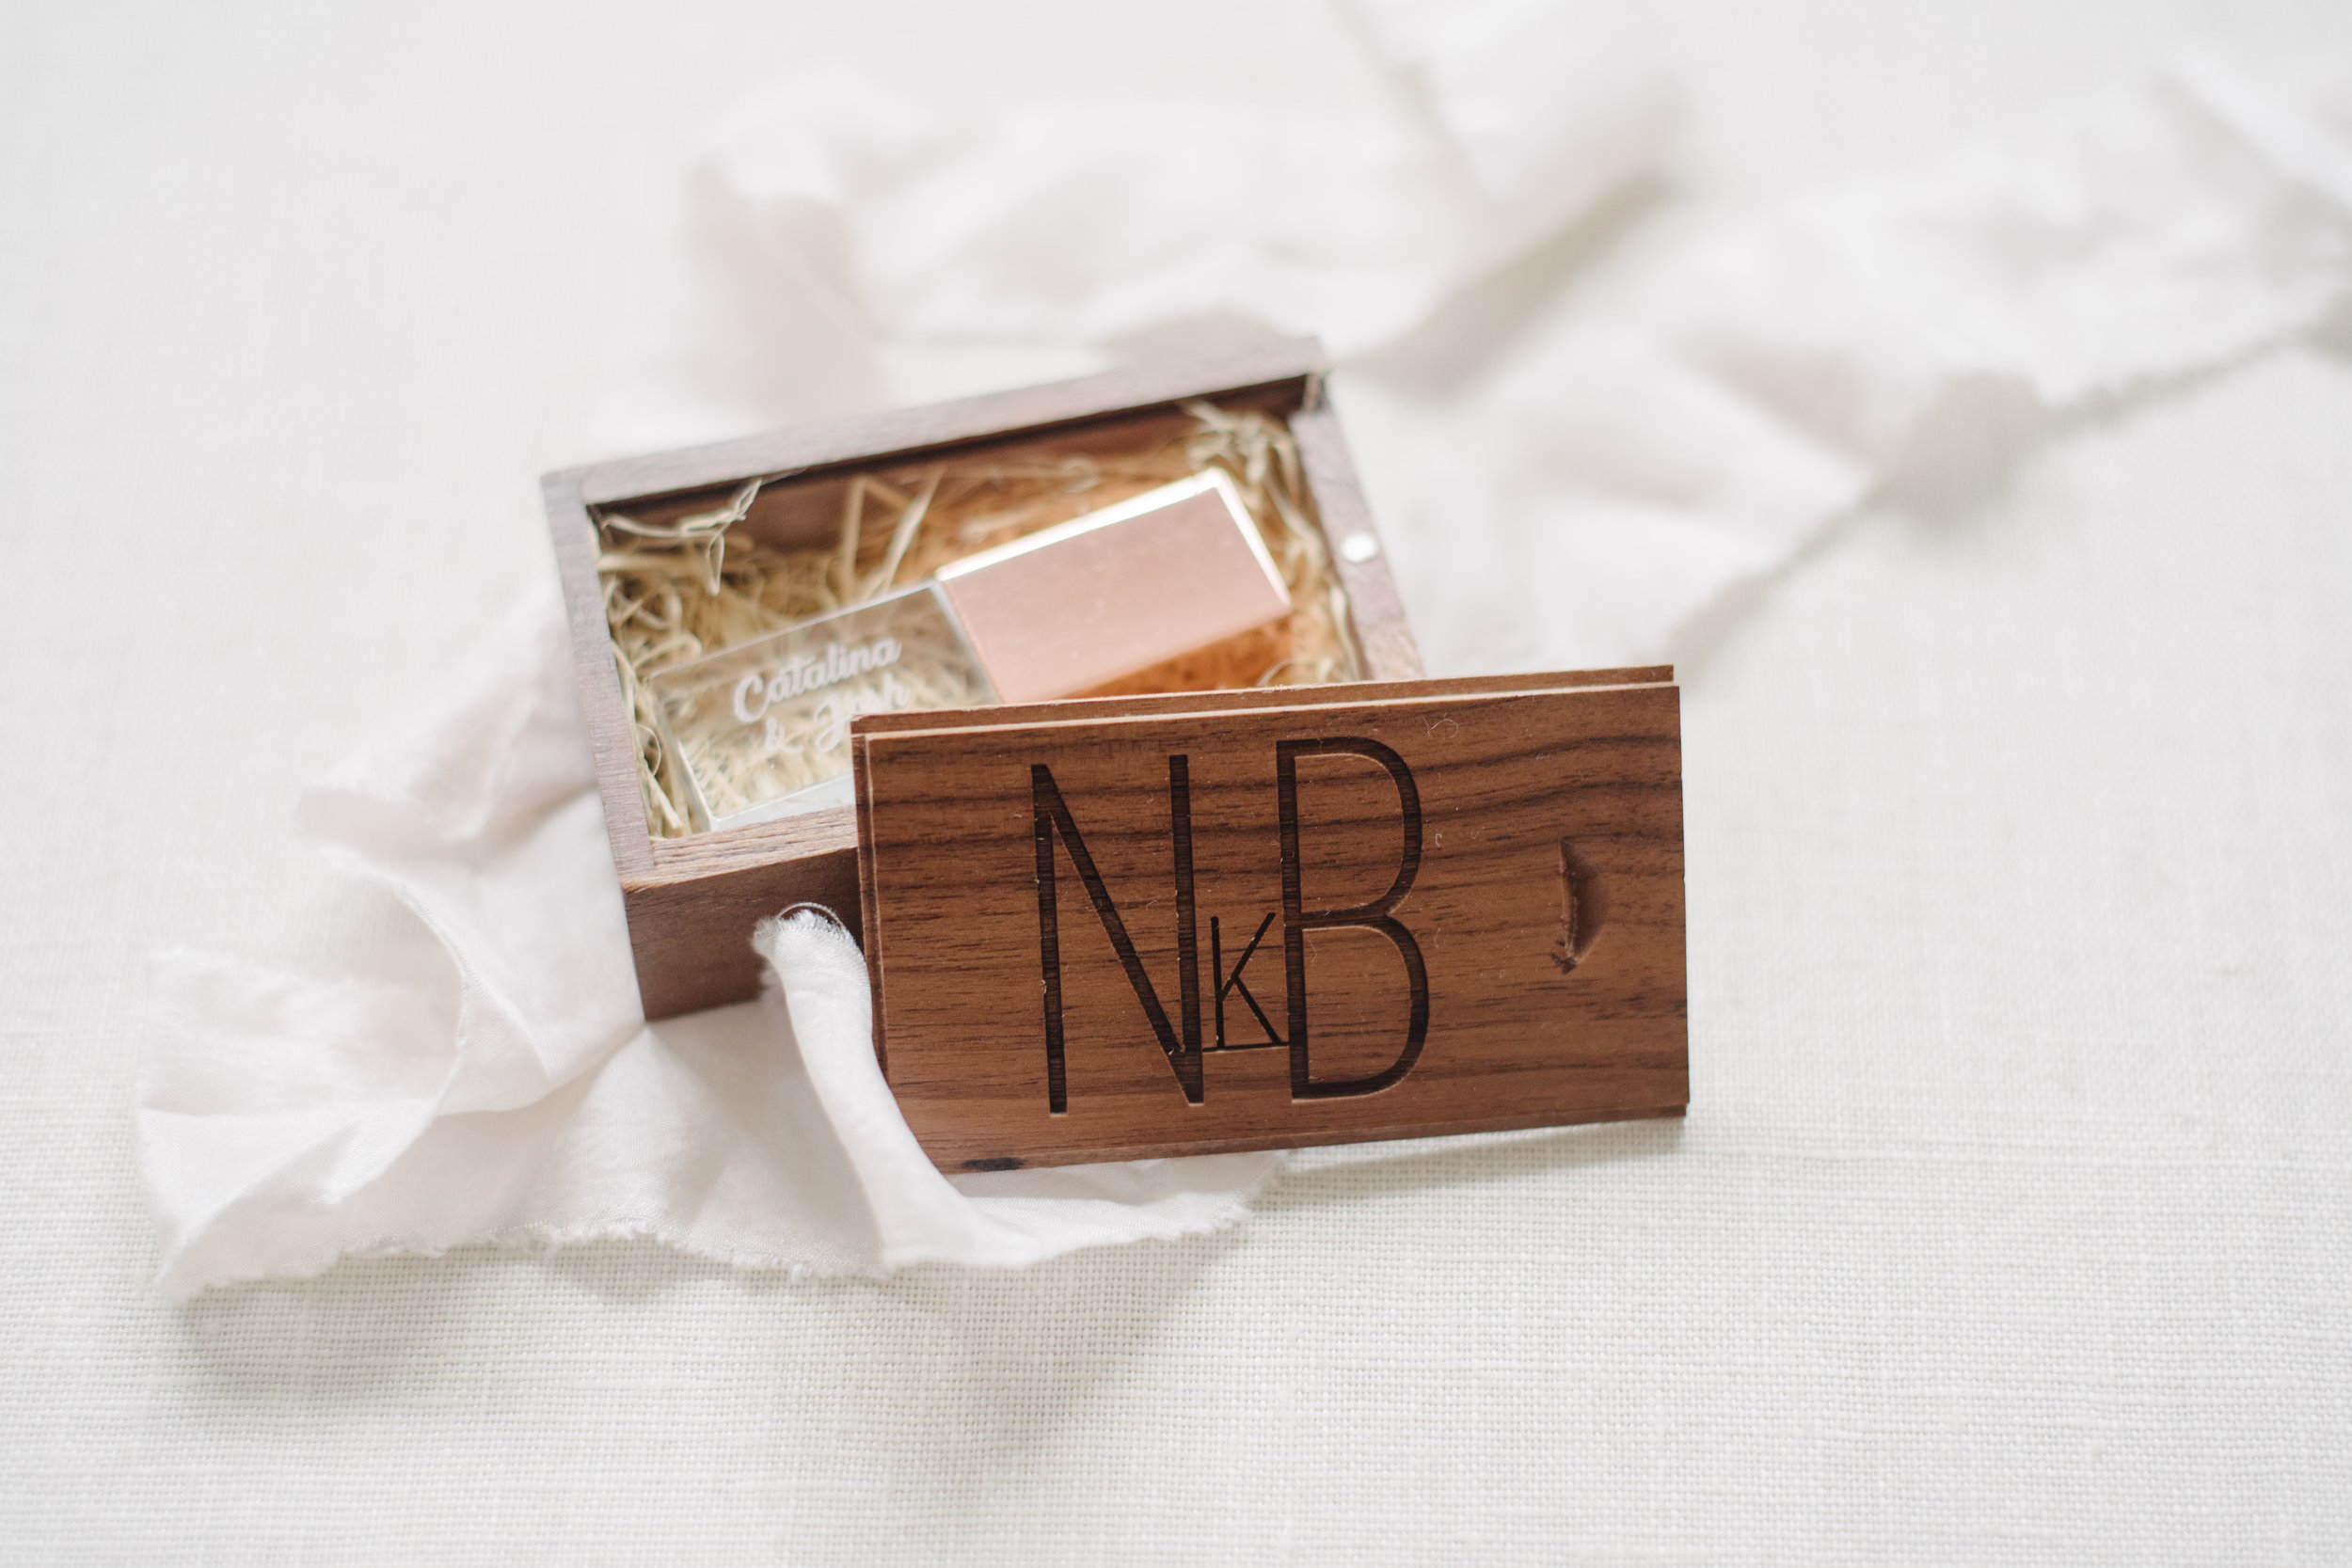 Rose Gold and Acrylic USB with a studio logo branded walnut box